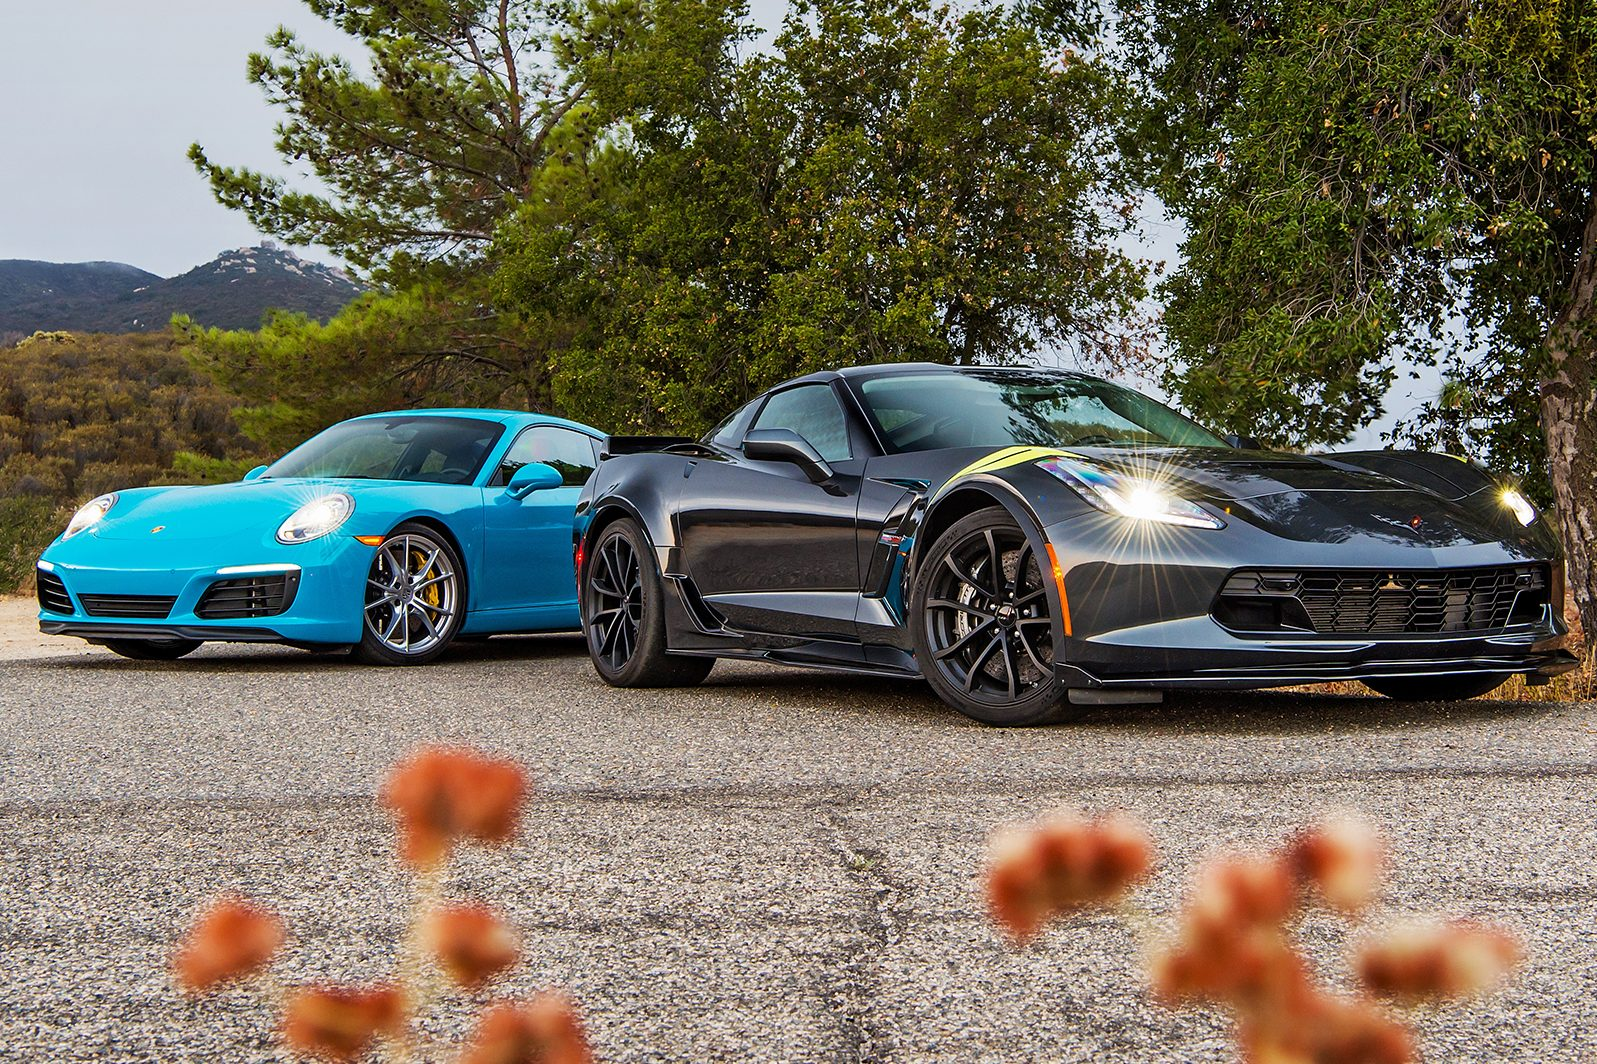 2017 corvette grand sport takes on porsche 911 carrera s